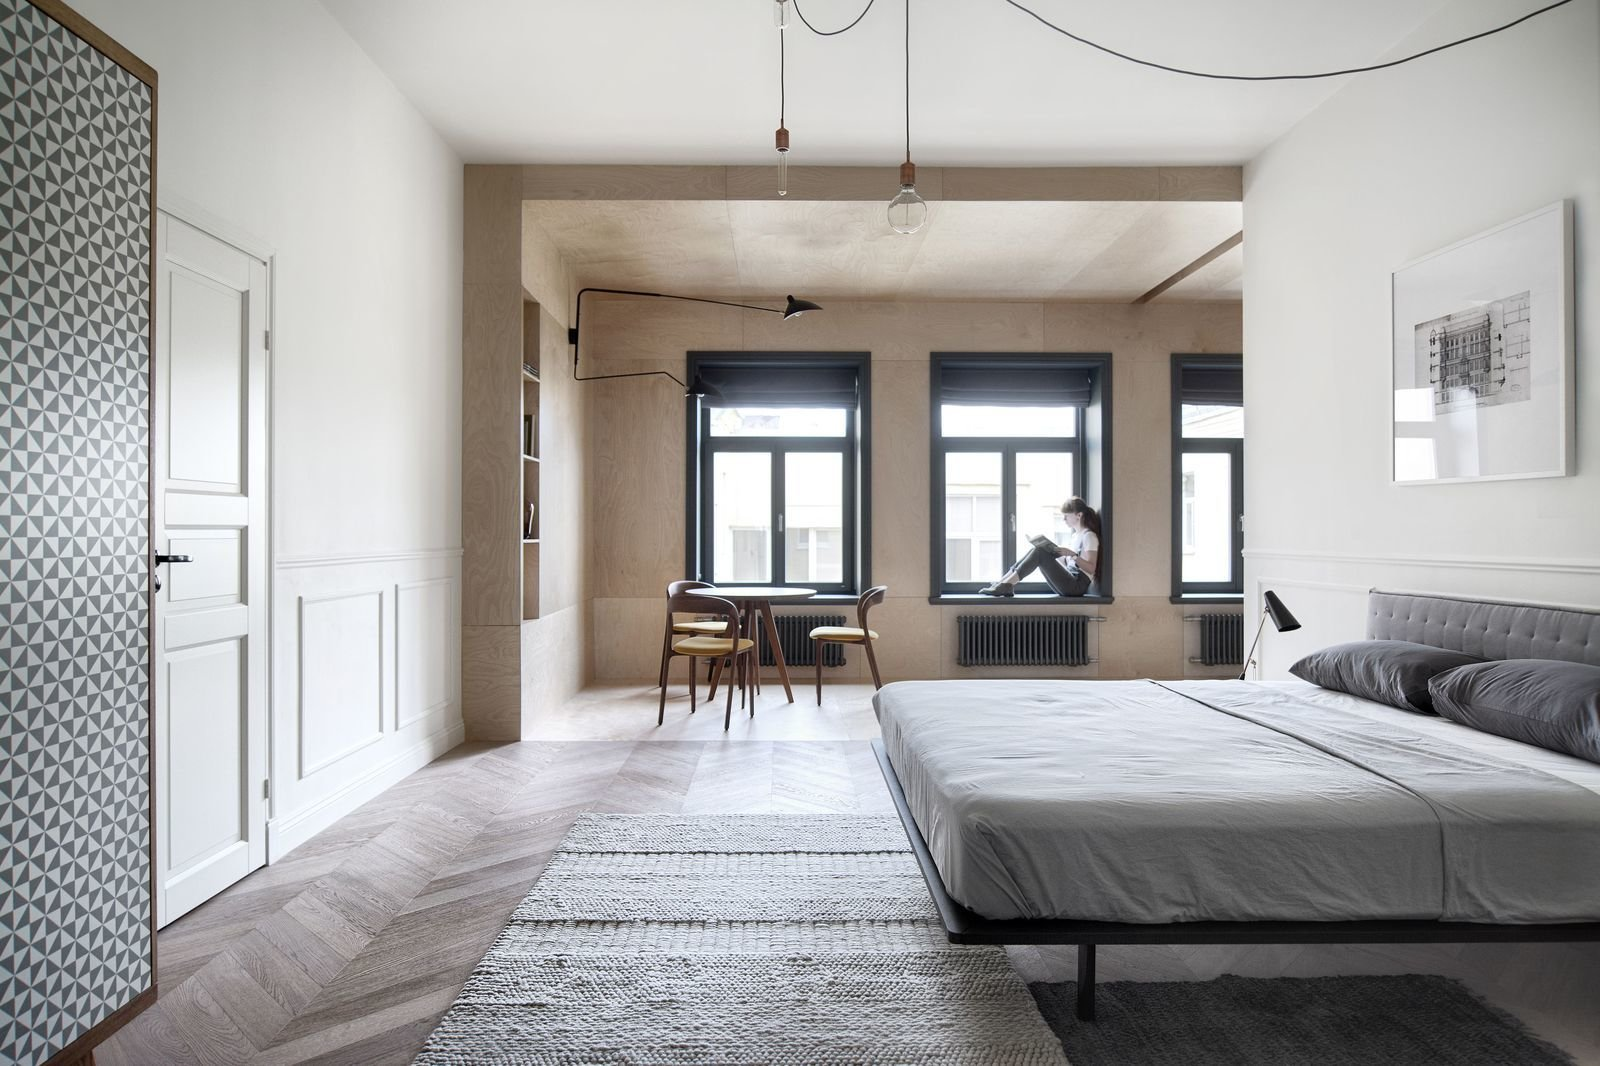 The bedroom in INT2 architecture's Saint Petersburg apartment